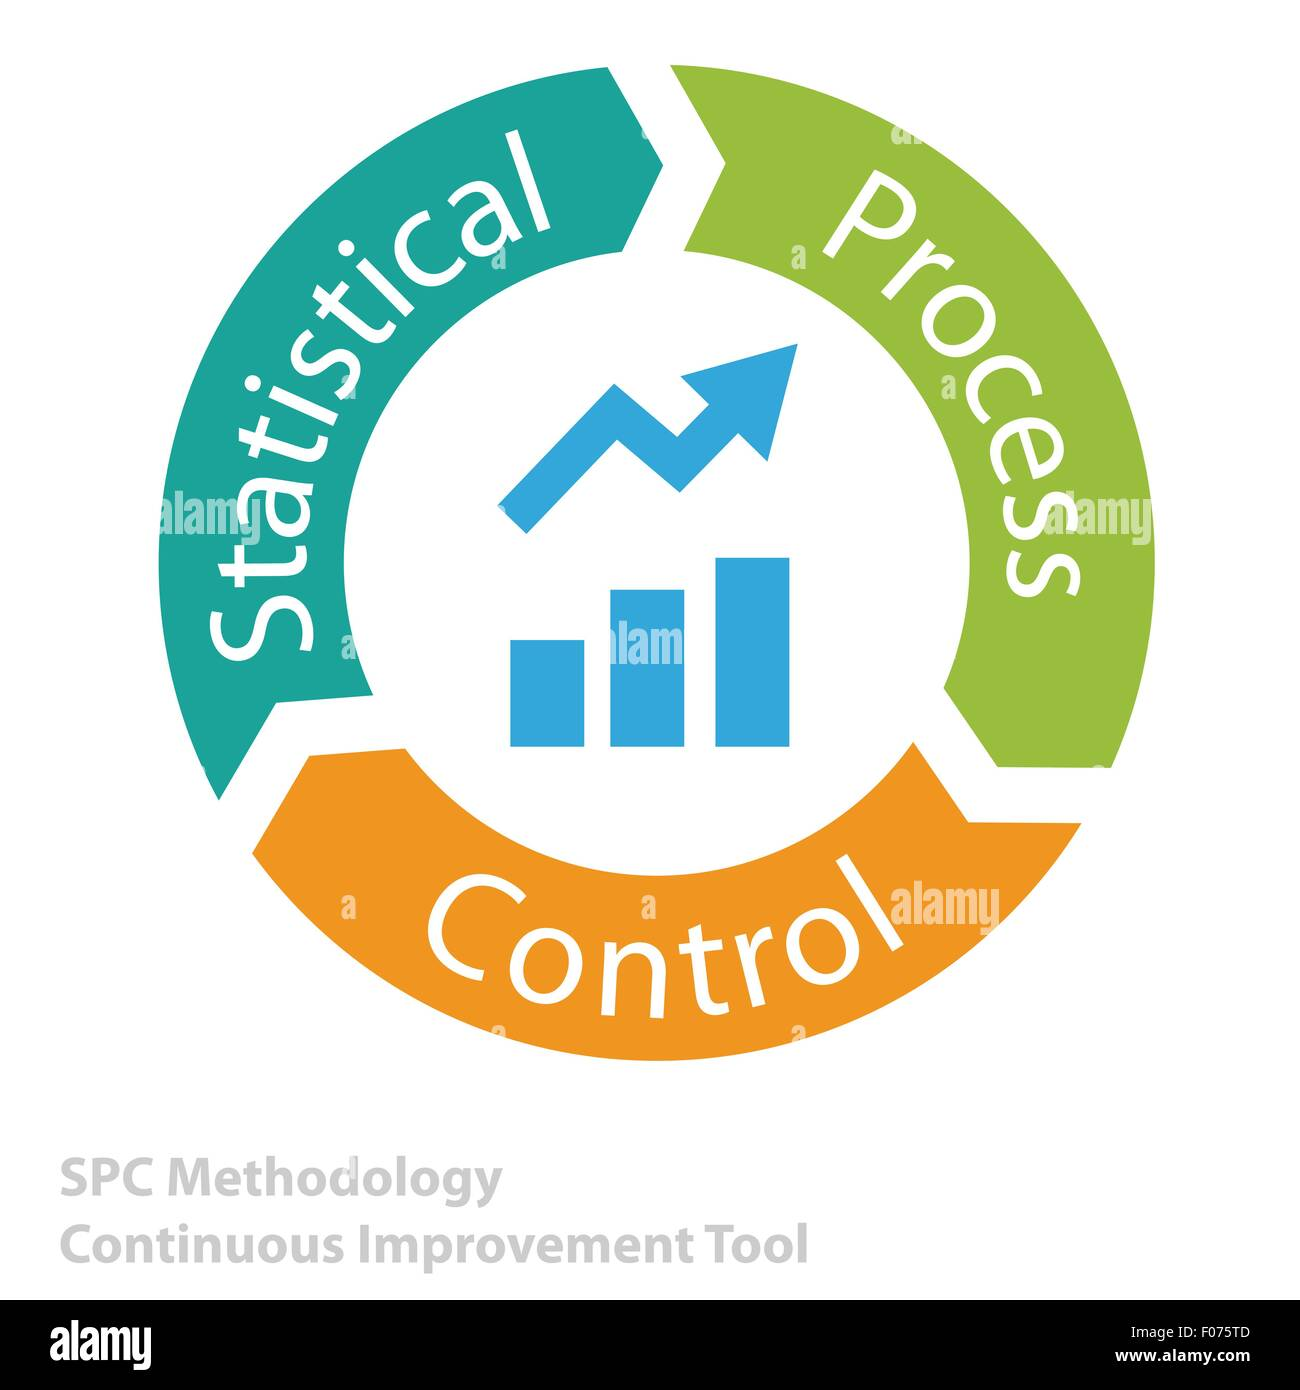 statistical process control tool icon as continuous improvement tool